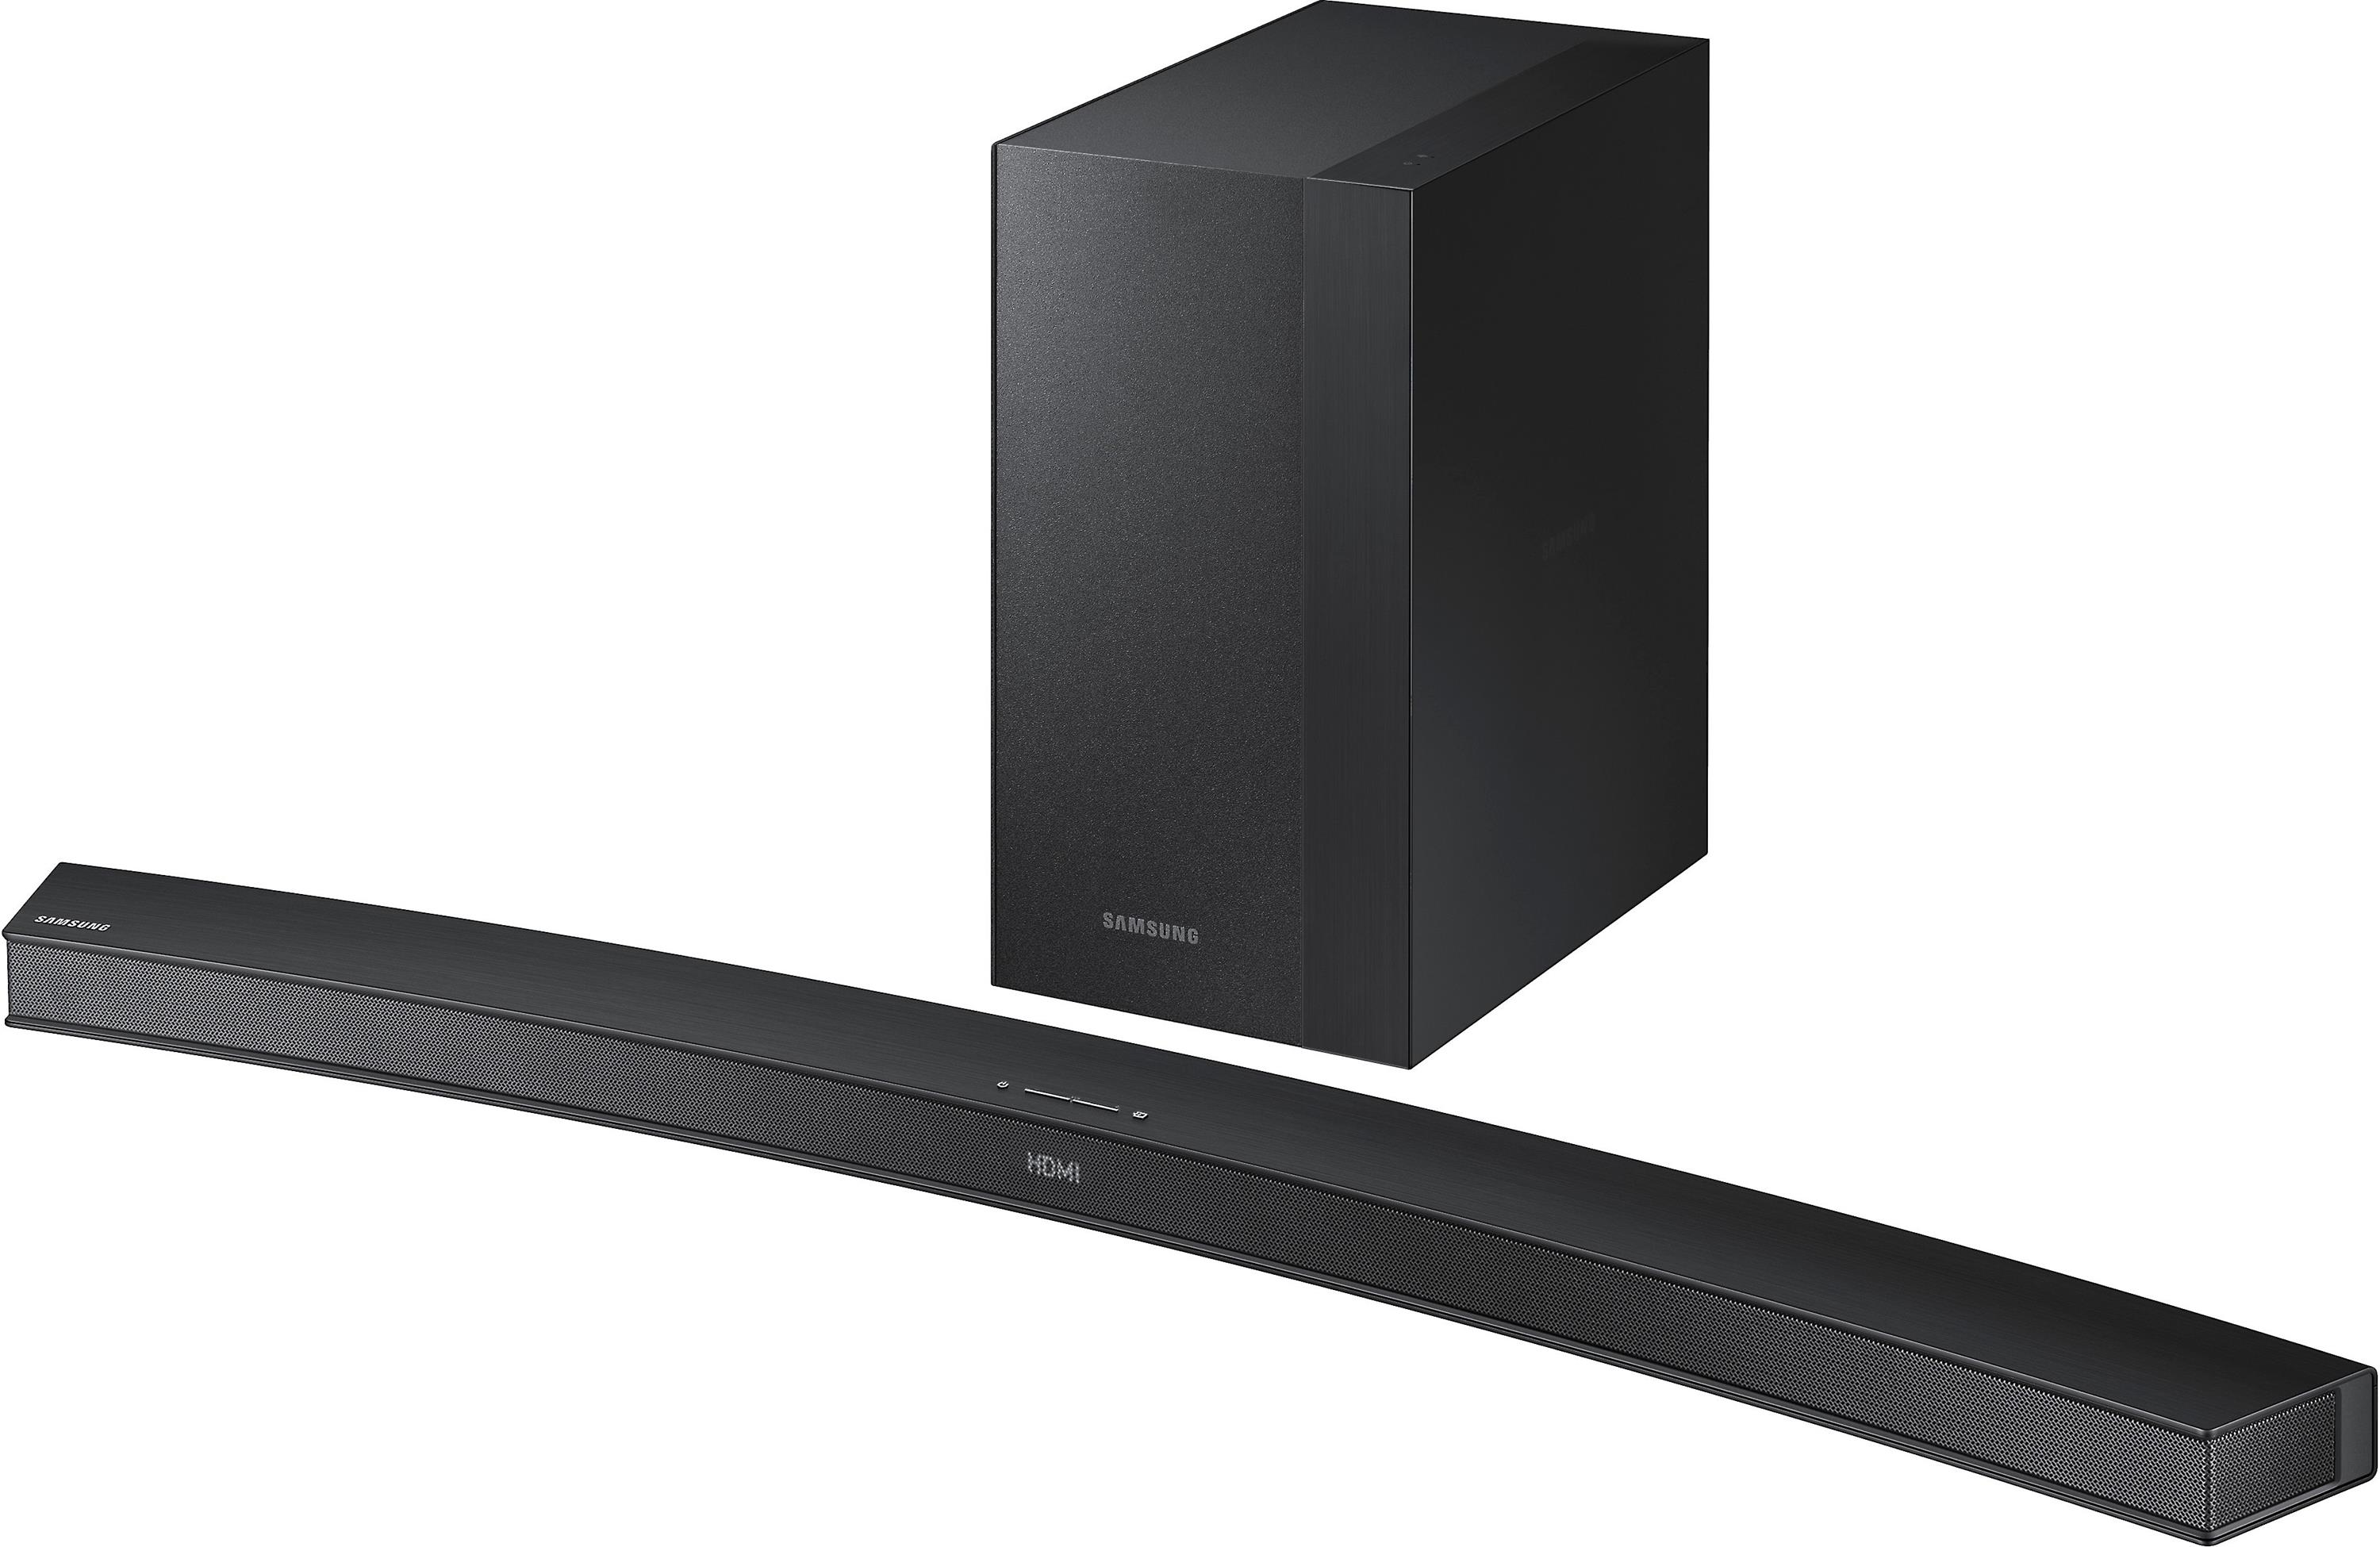 Get a FREE curved sound bar with purchase of select Samsung curved TVs — Ends 6/3